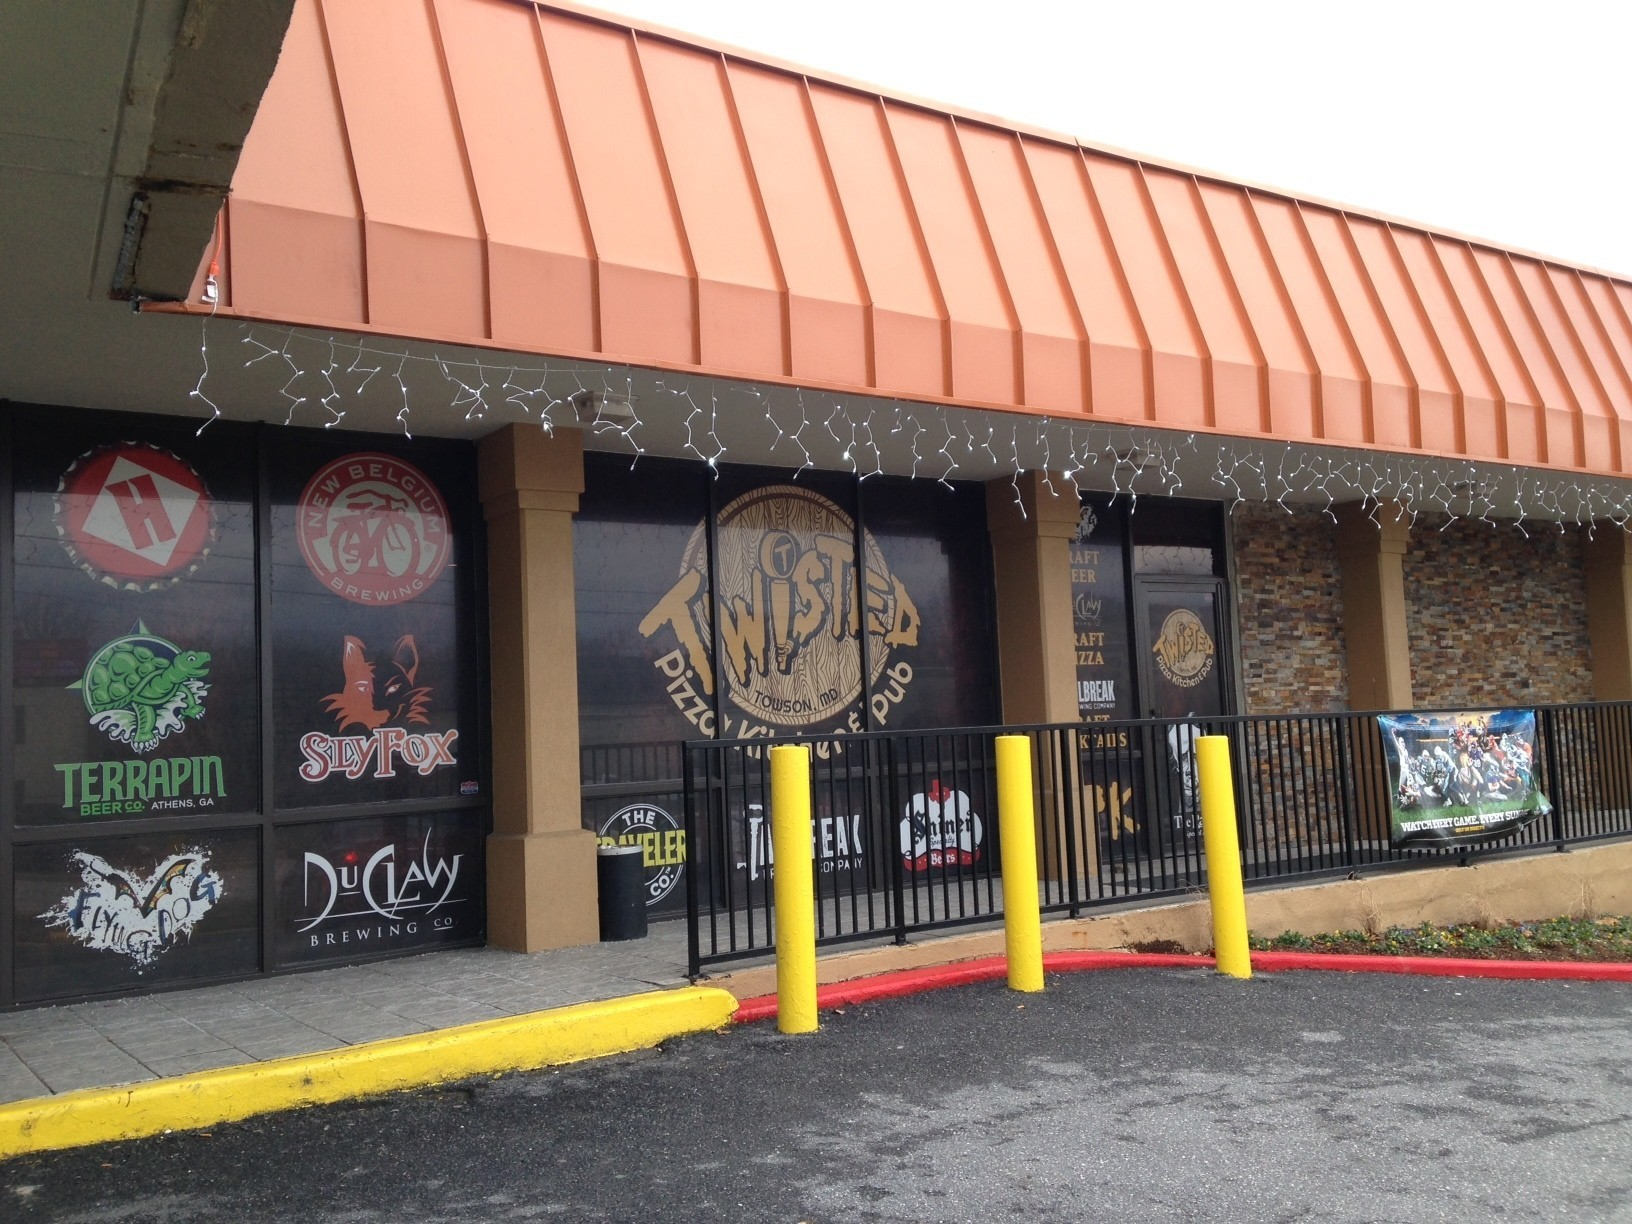 twisted pizza kitchen and pub has character and a comfortable